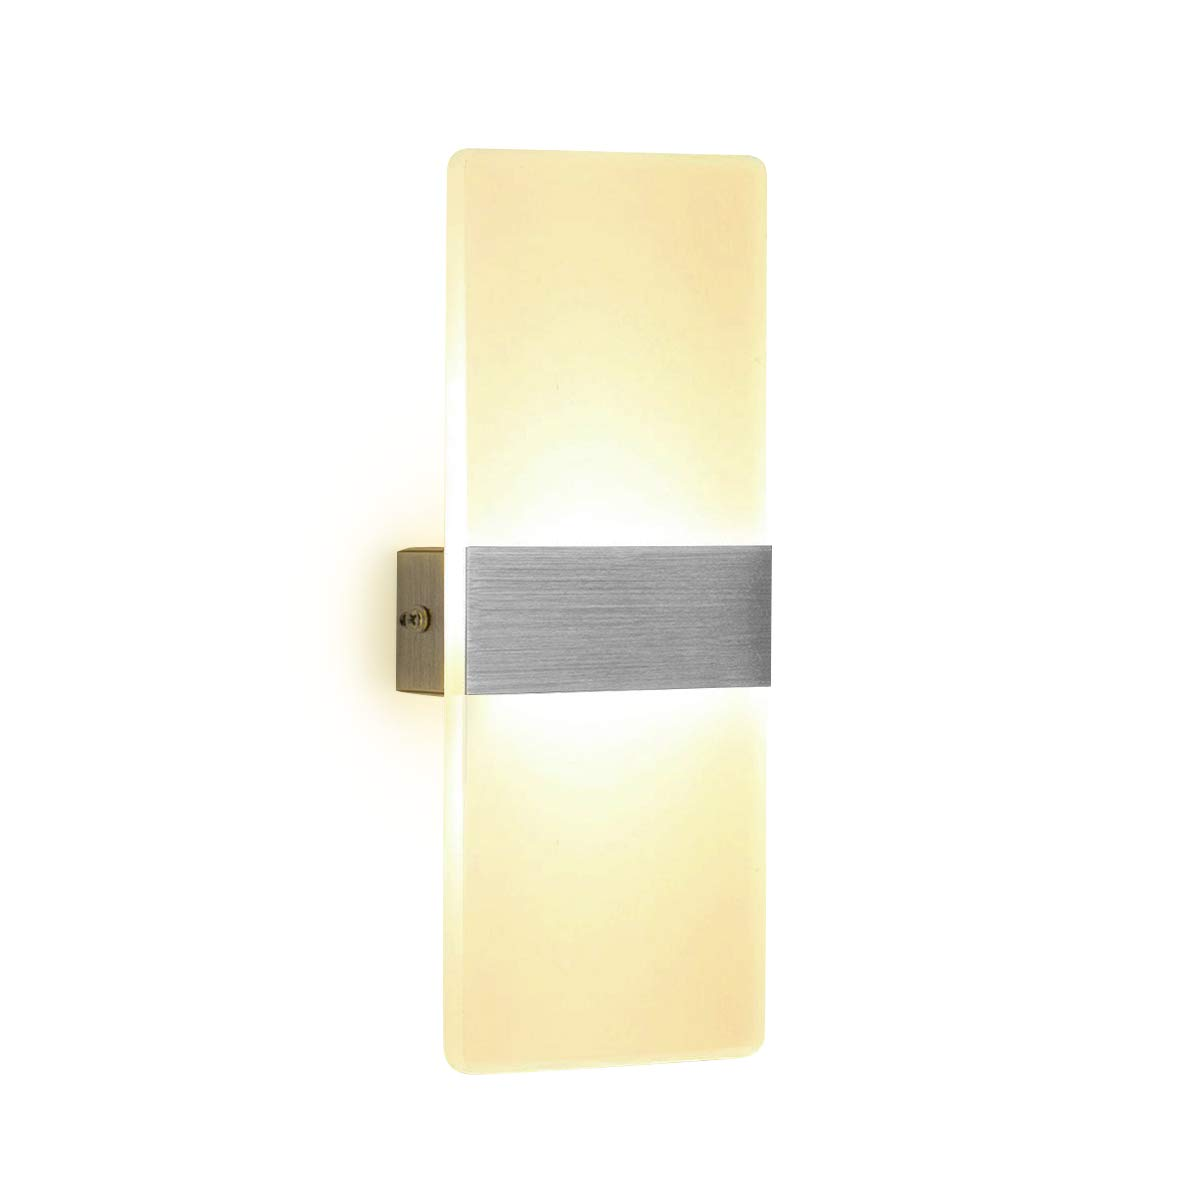 LED Wall Light 6W Warm White Modern Acrylic Wall Lamp White Wall Sconce Lights Night Lights Perfect for Living Room Bedroom Corridor Stairs Bathroom Indoor Lighting NetBoat